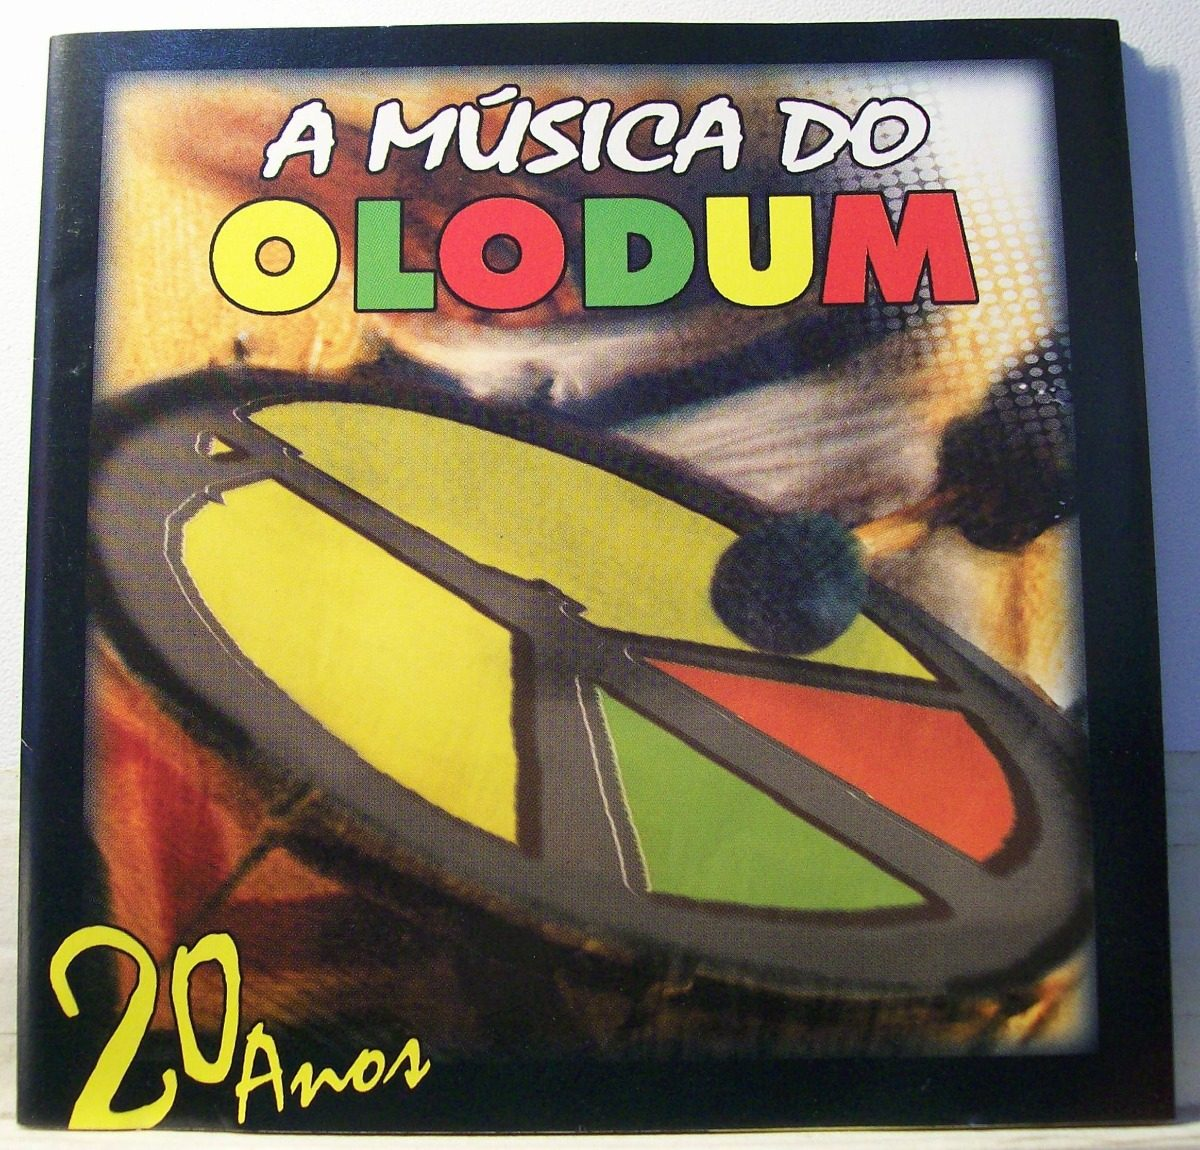 cd do olodum 20 anos